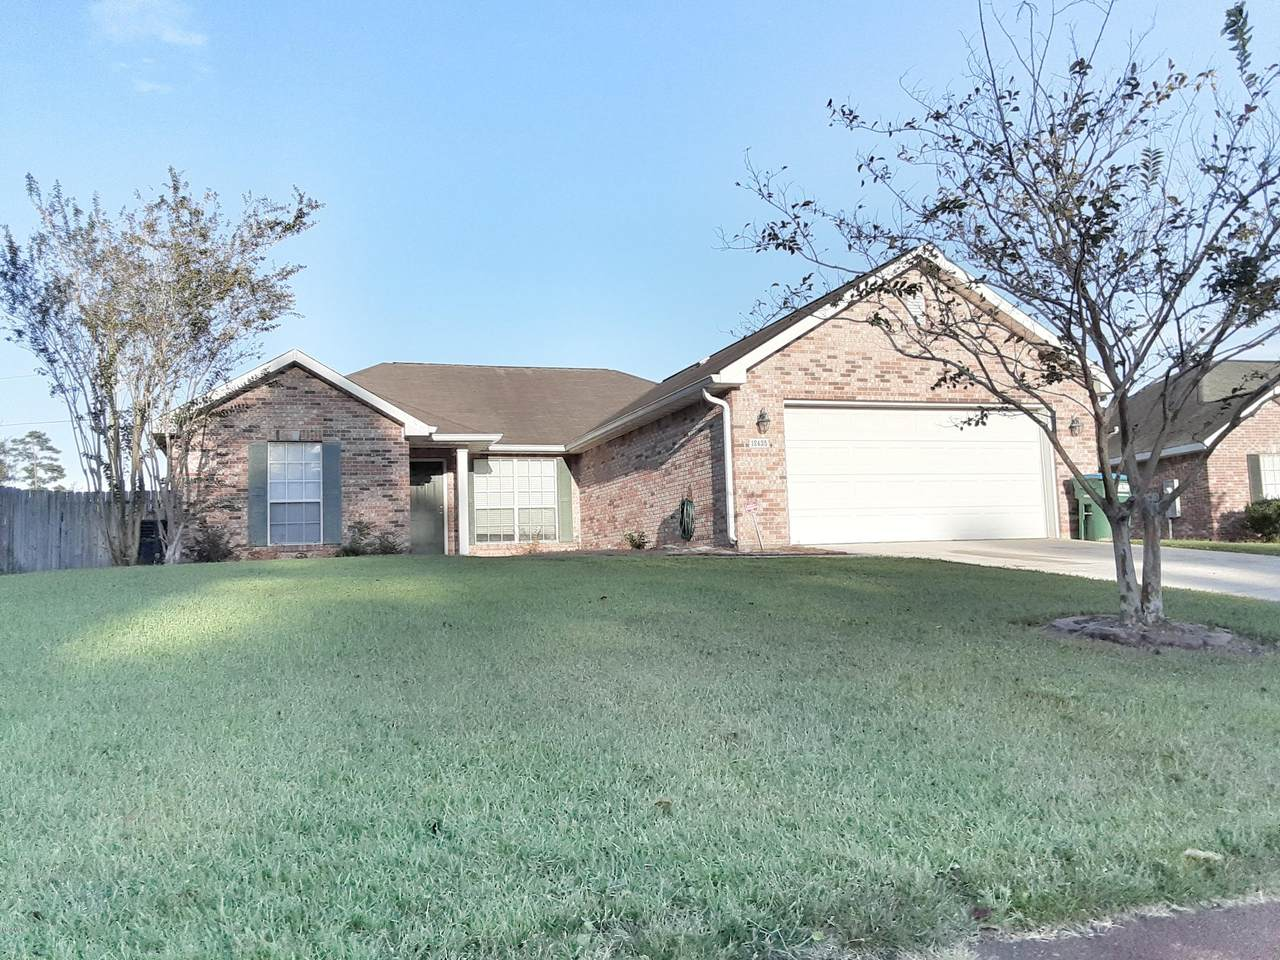 12435 Crystal Well Ct - Photo 1